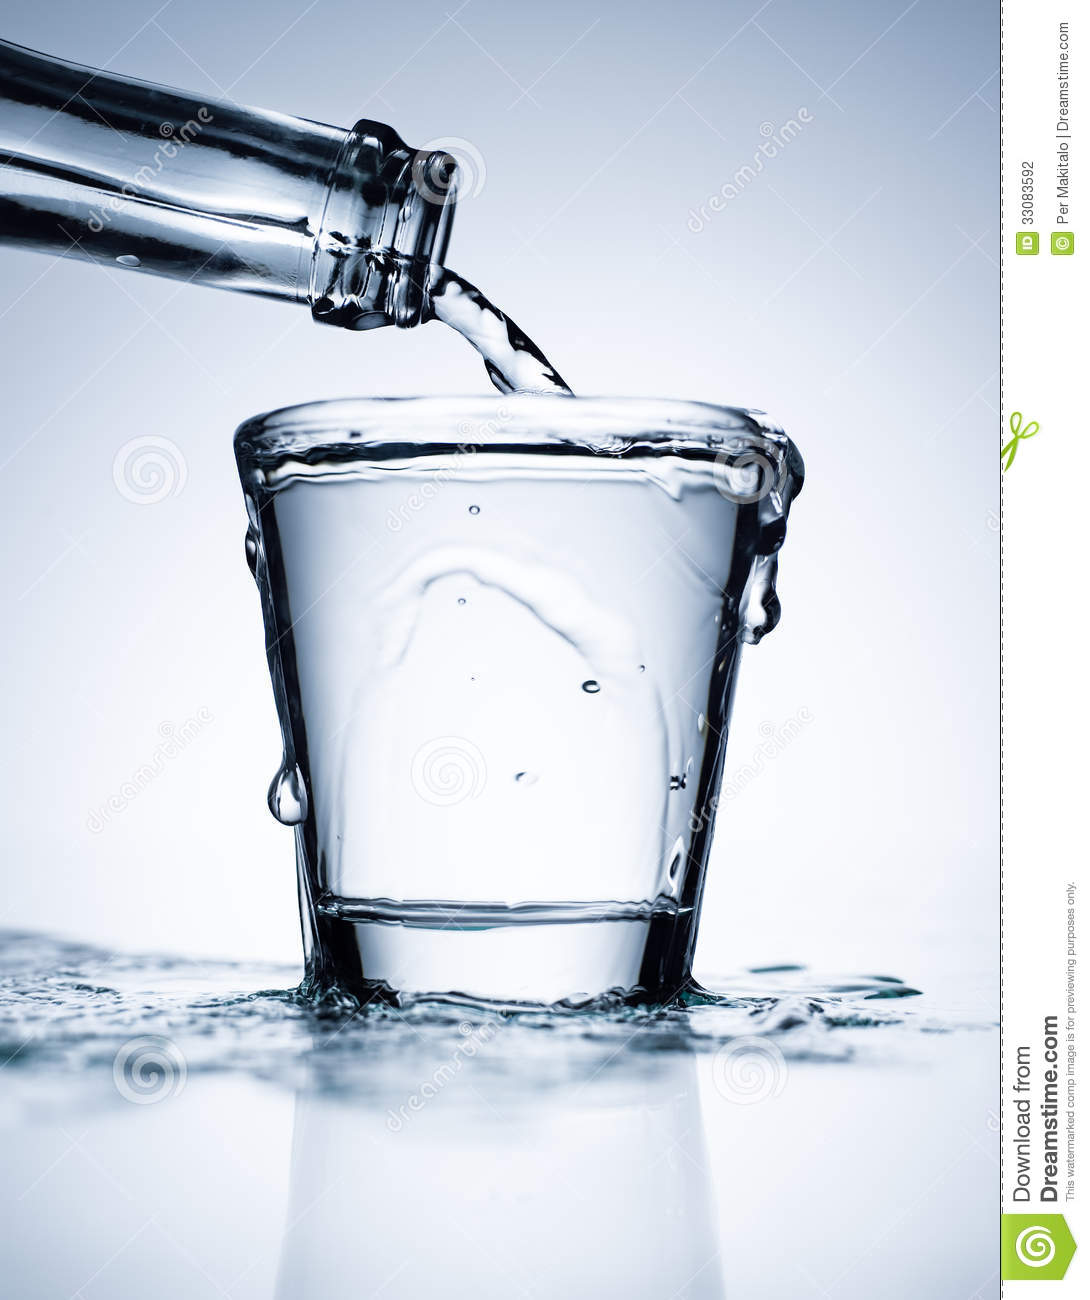 Http Www Dreamstime Com Stock Photography Glass Full Water Pouring Bottle Image33083592